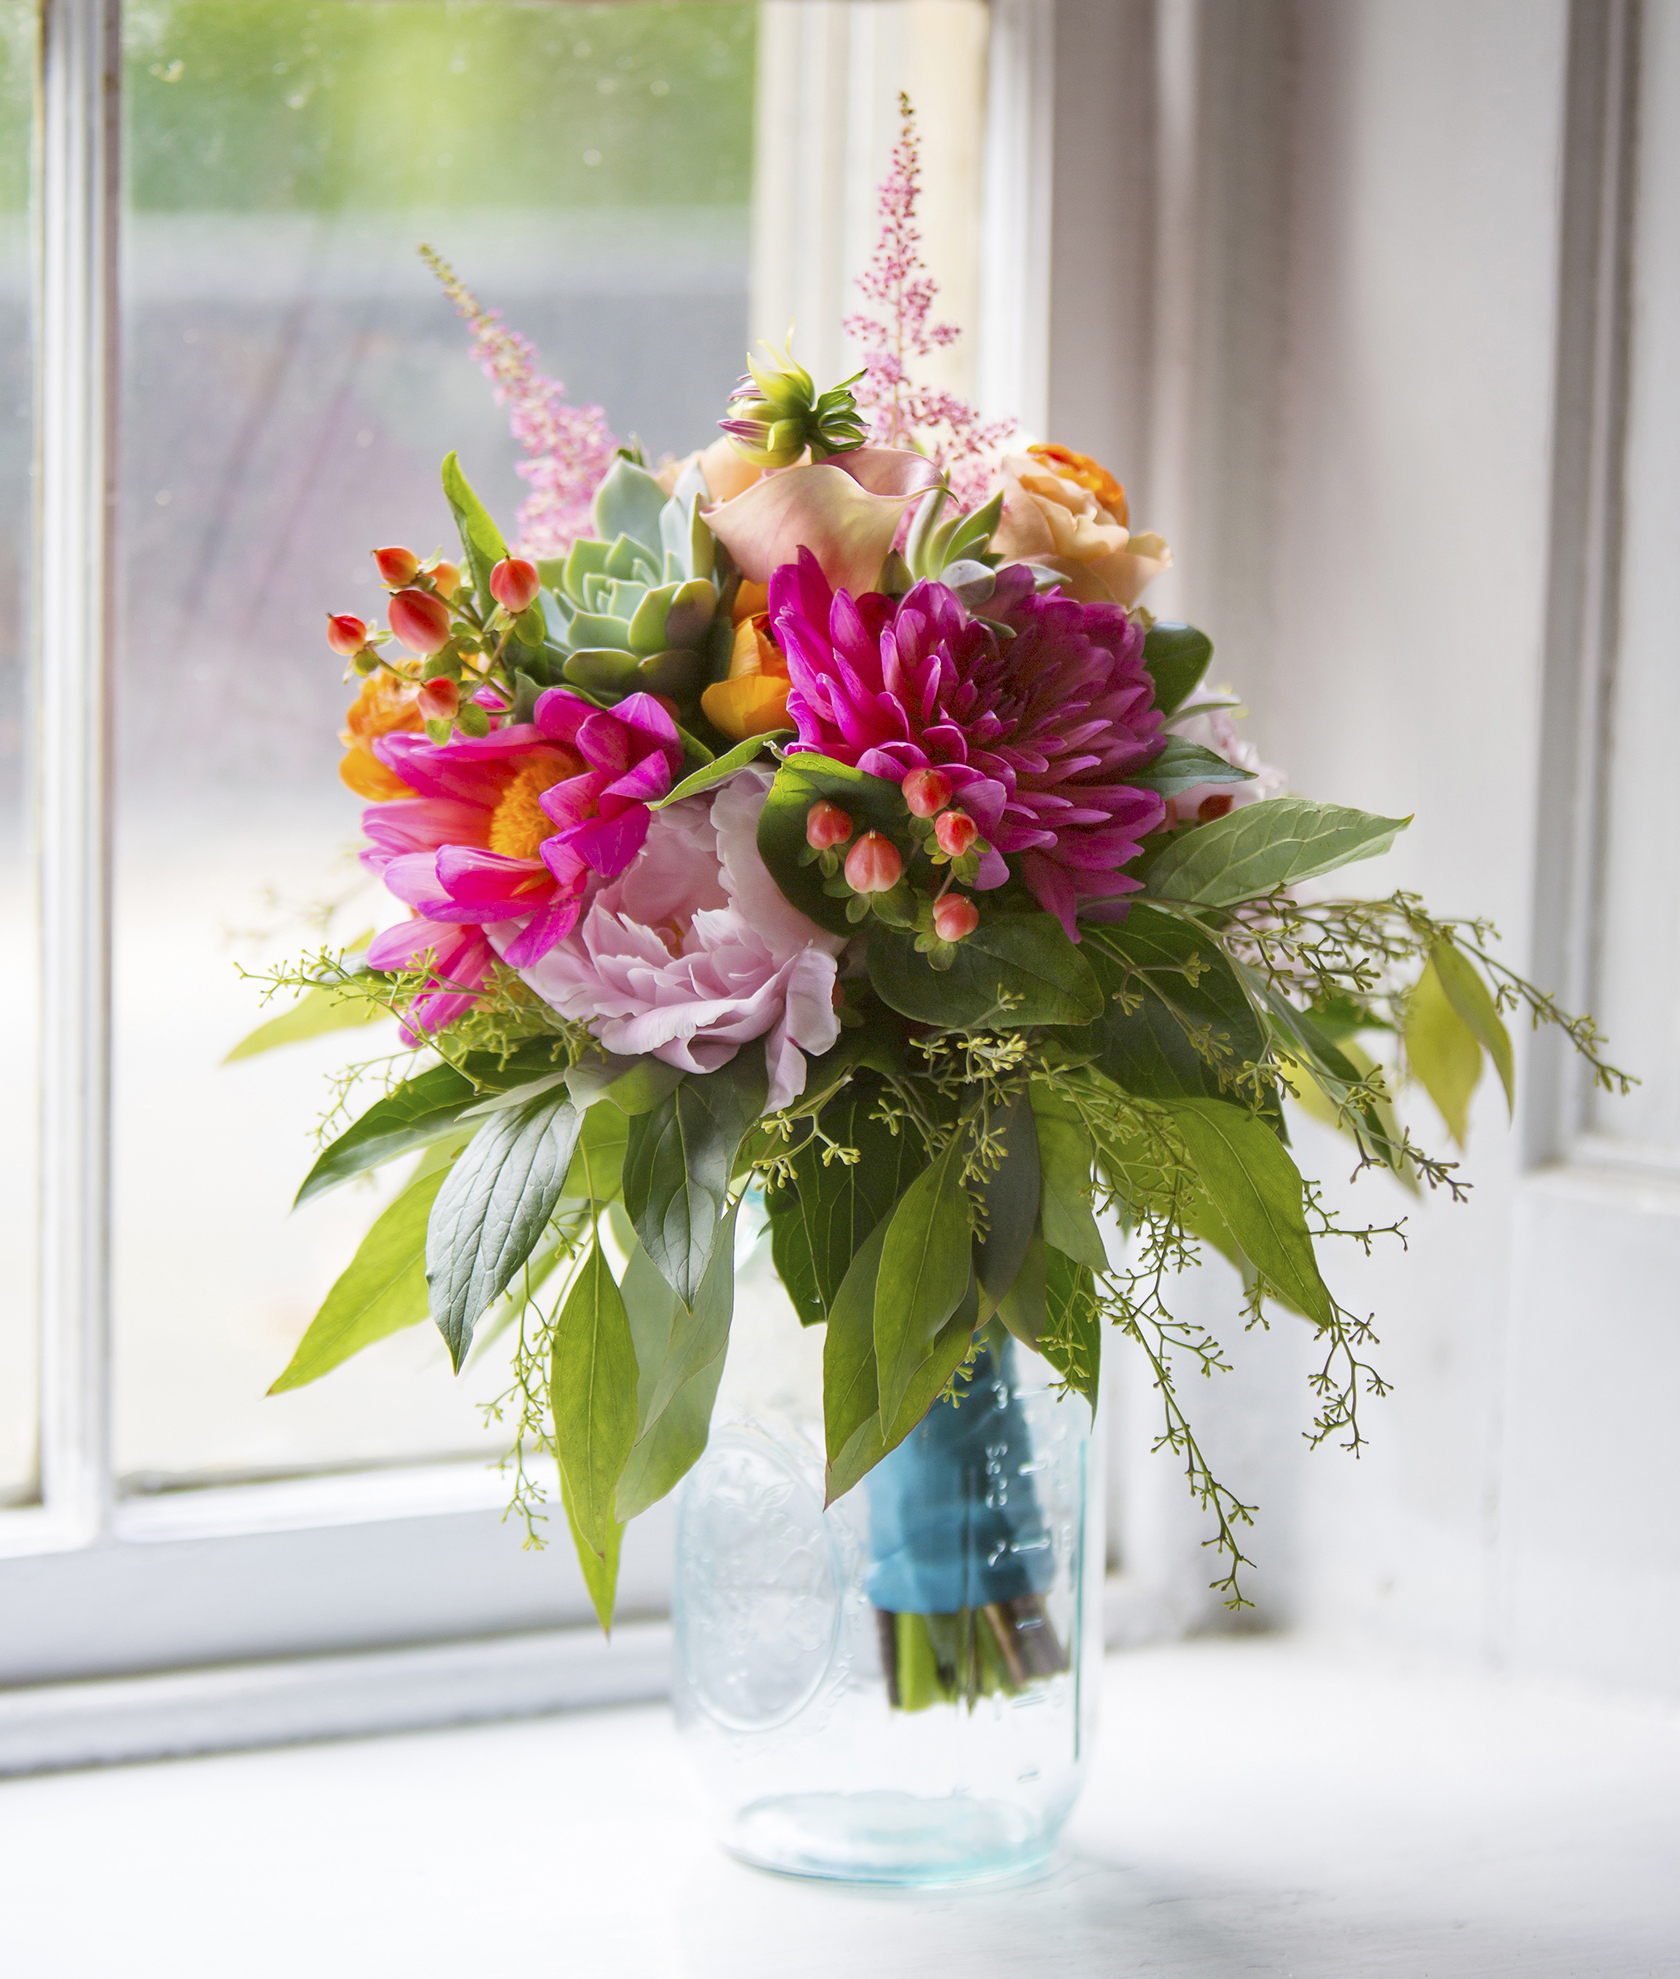 wedding flowers wedding flower arrangements Wedding Bouquet bright pink dahlias pale garden roses and peach roses with a blue